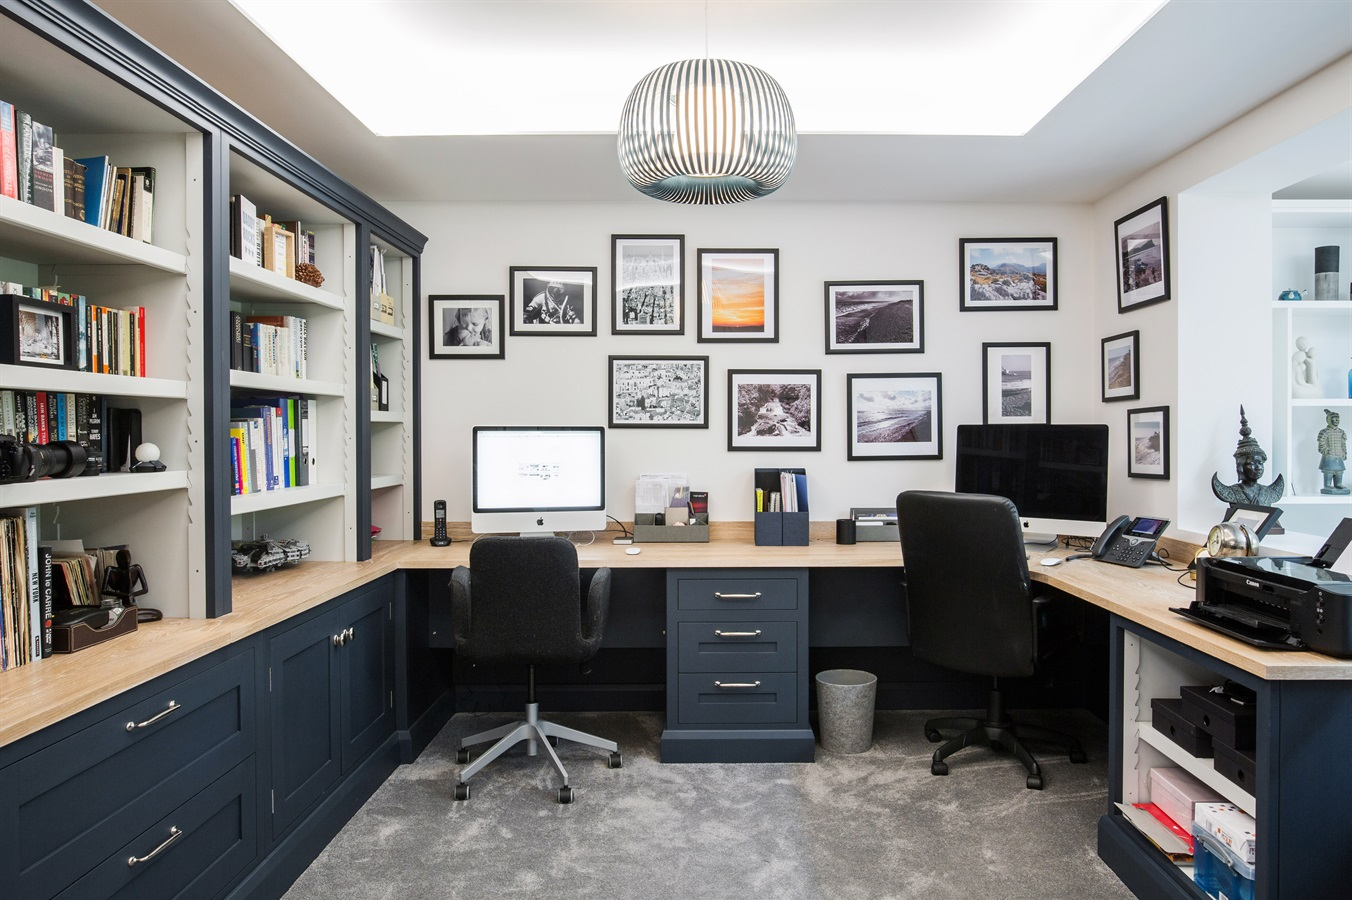 Burlanes Bespoke Home Office Furniture  - Burlanes design and create bespoke home office and storage solutions for your home